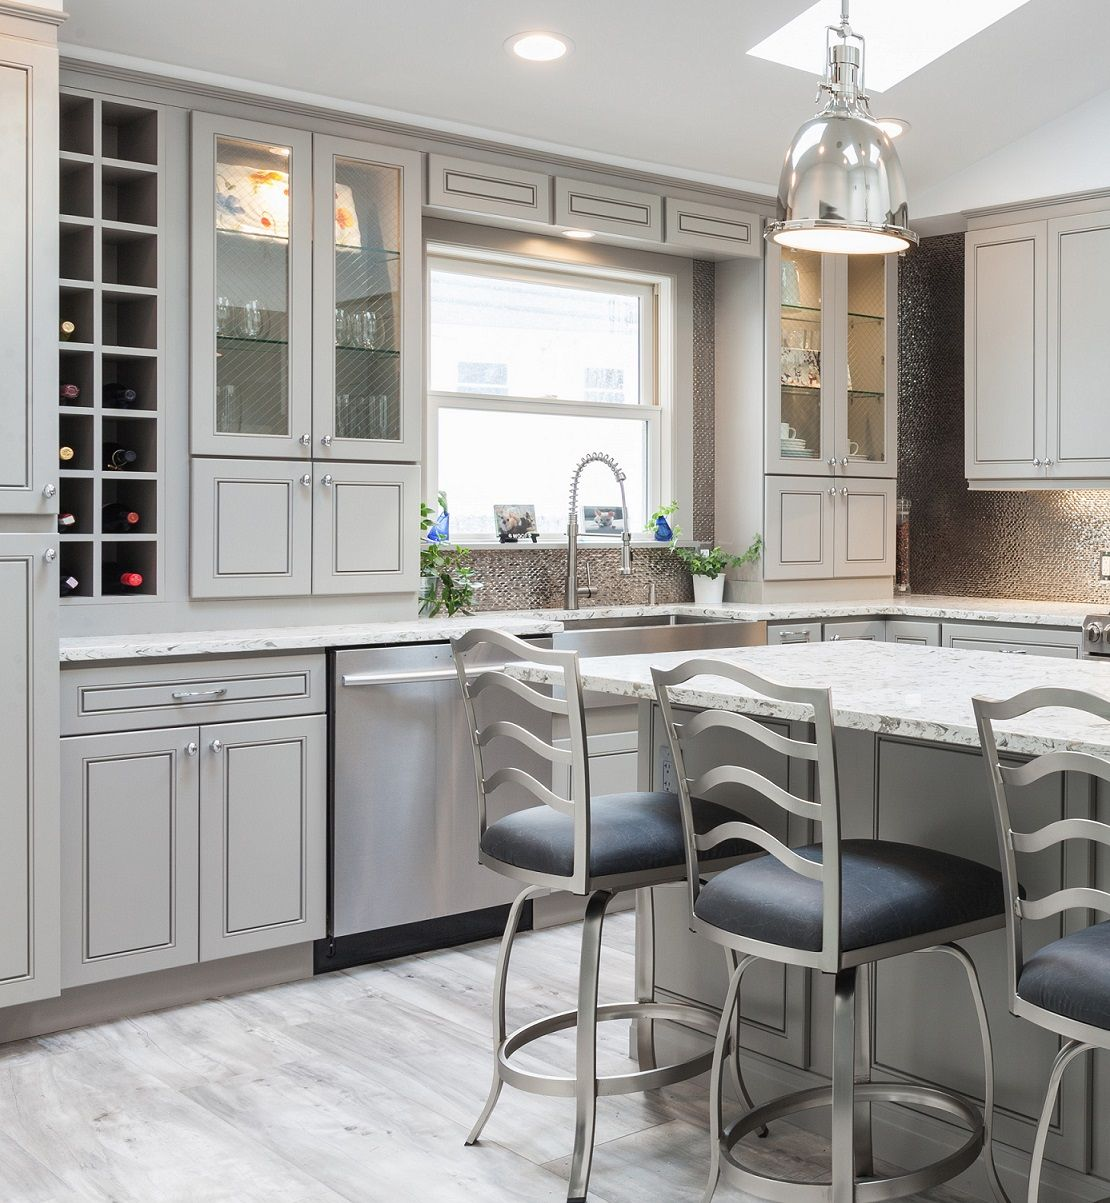 Discount Kitchen Cabinets Countertops Appliances In East Valley Az Kitchen Cabinets And Countertops Discount Kitchen Cabinets Cabinets And Countertops